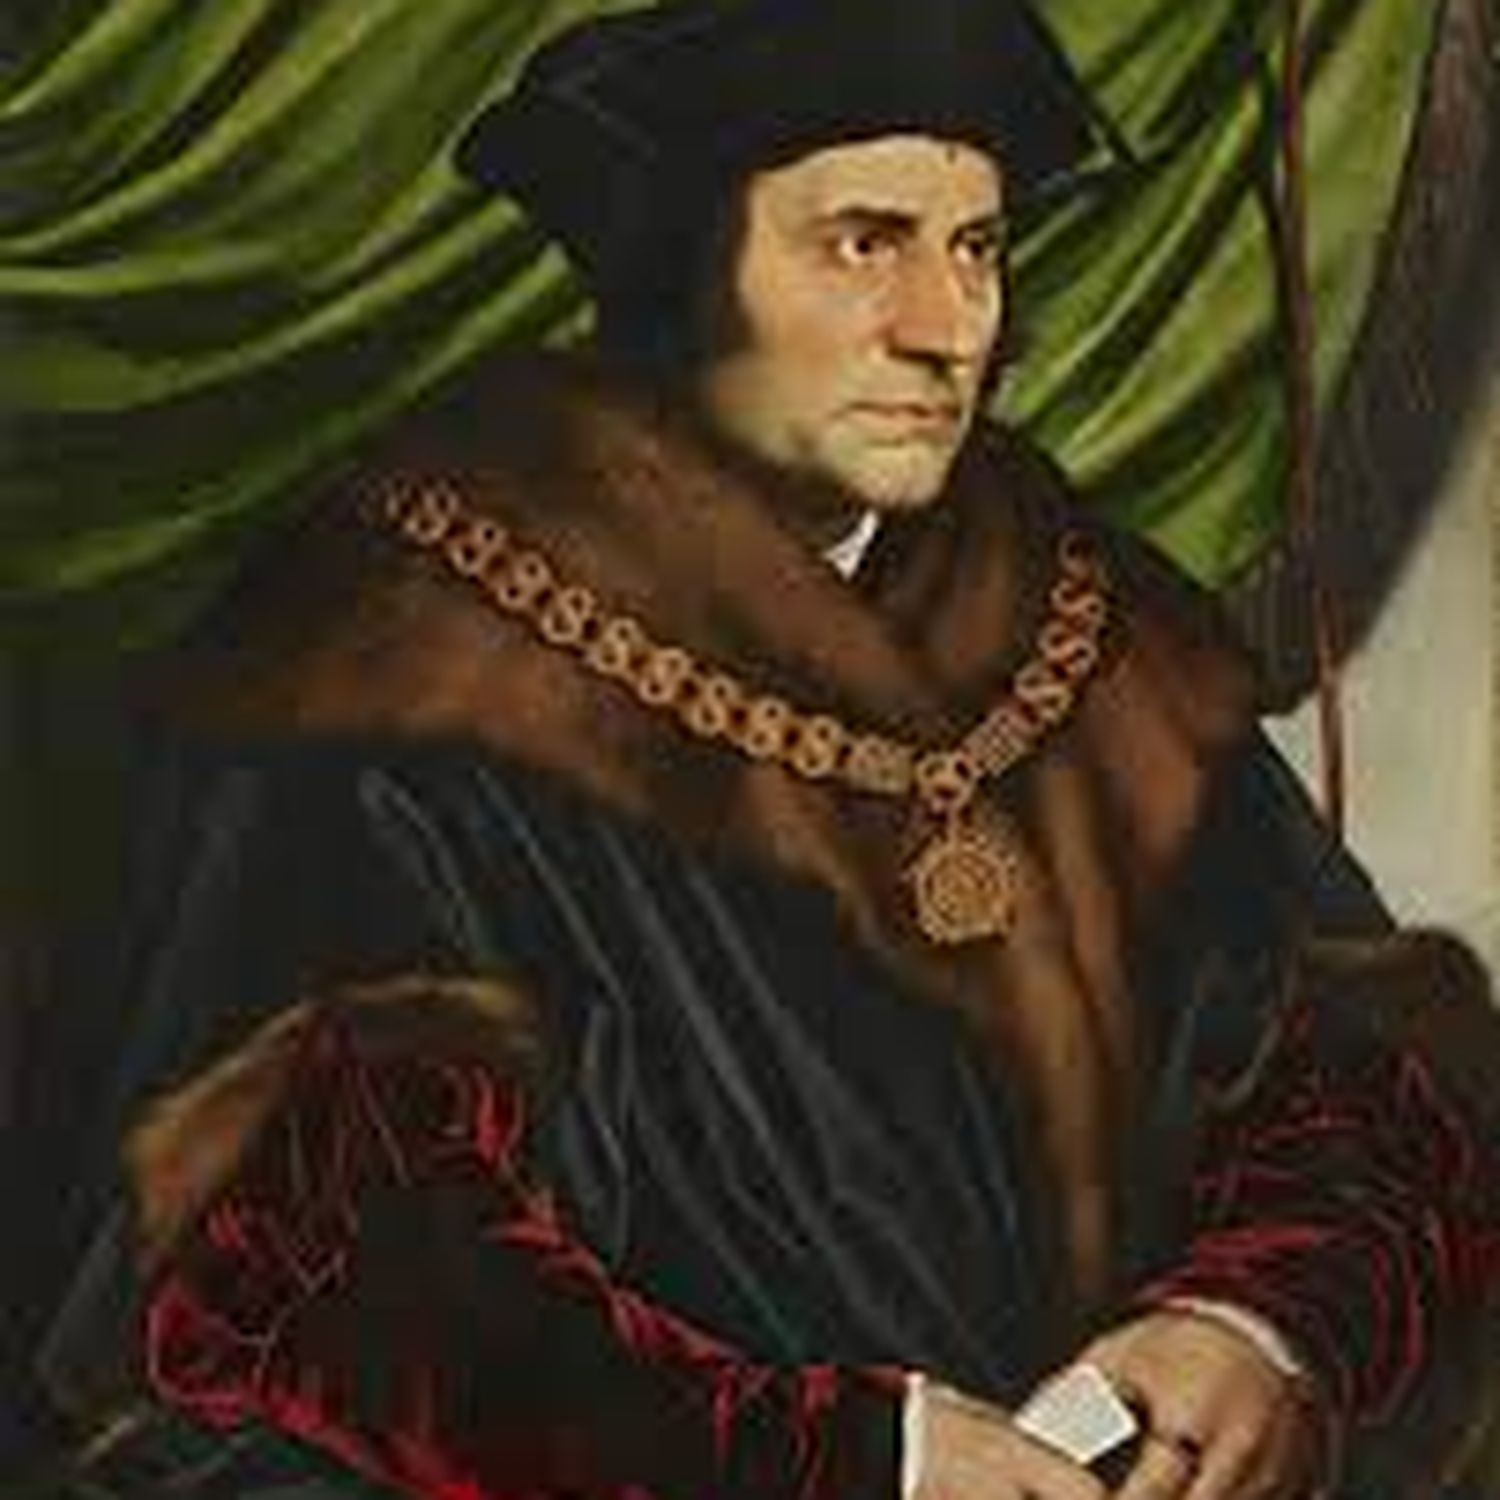 Episode 055: Tudor Times on Thomas More